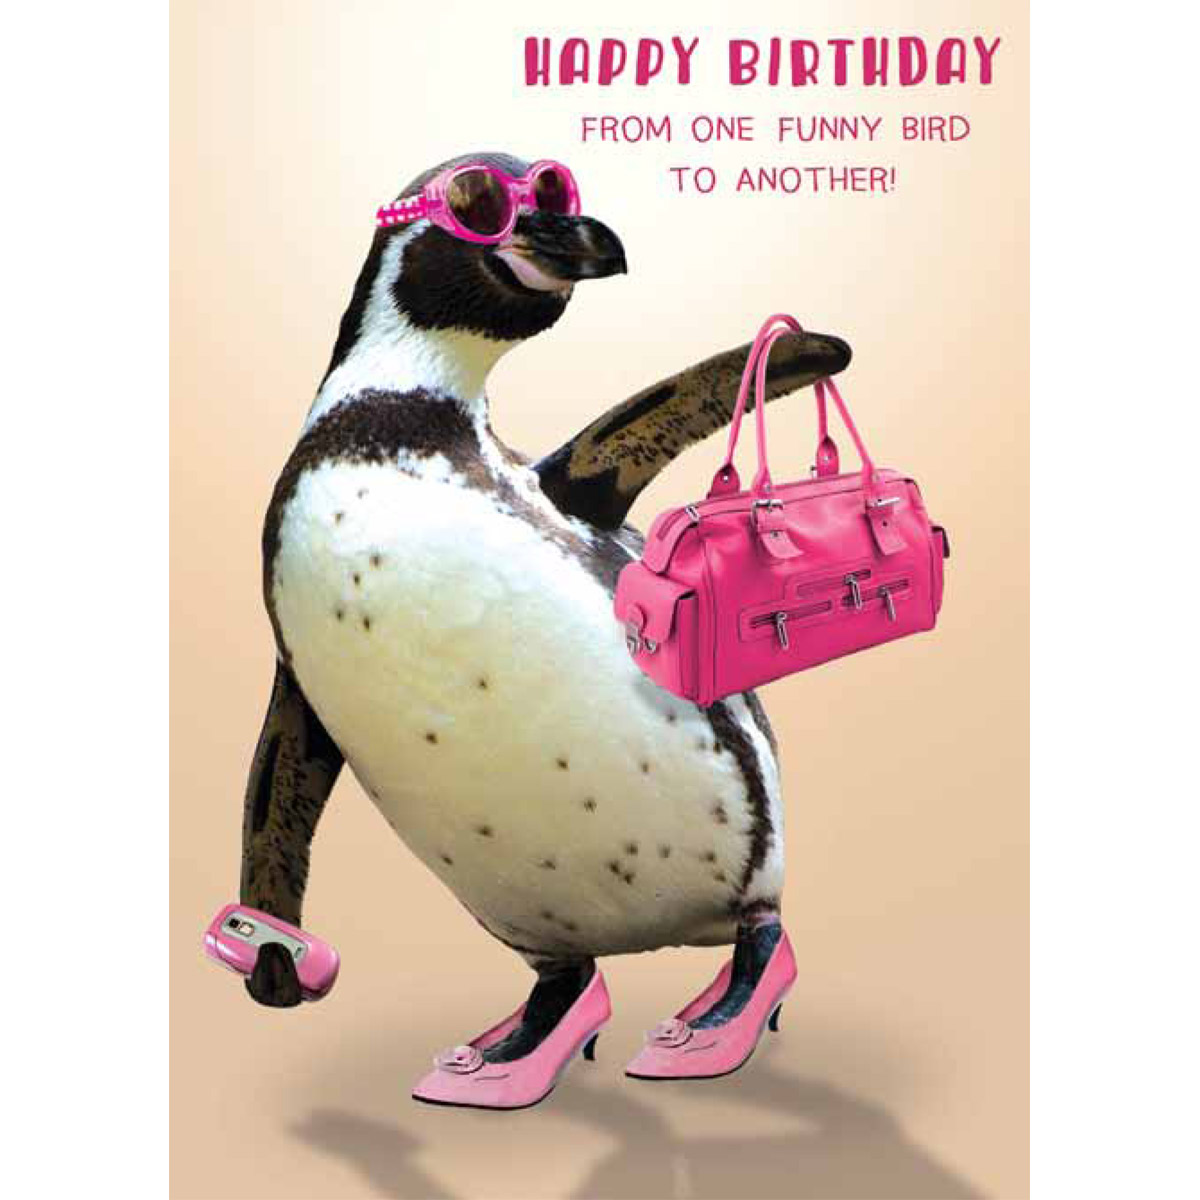 From one funny bird to another birthday card by the bhf from one funny bird to another birthday card kristyandbryce Images